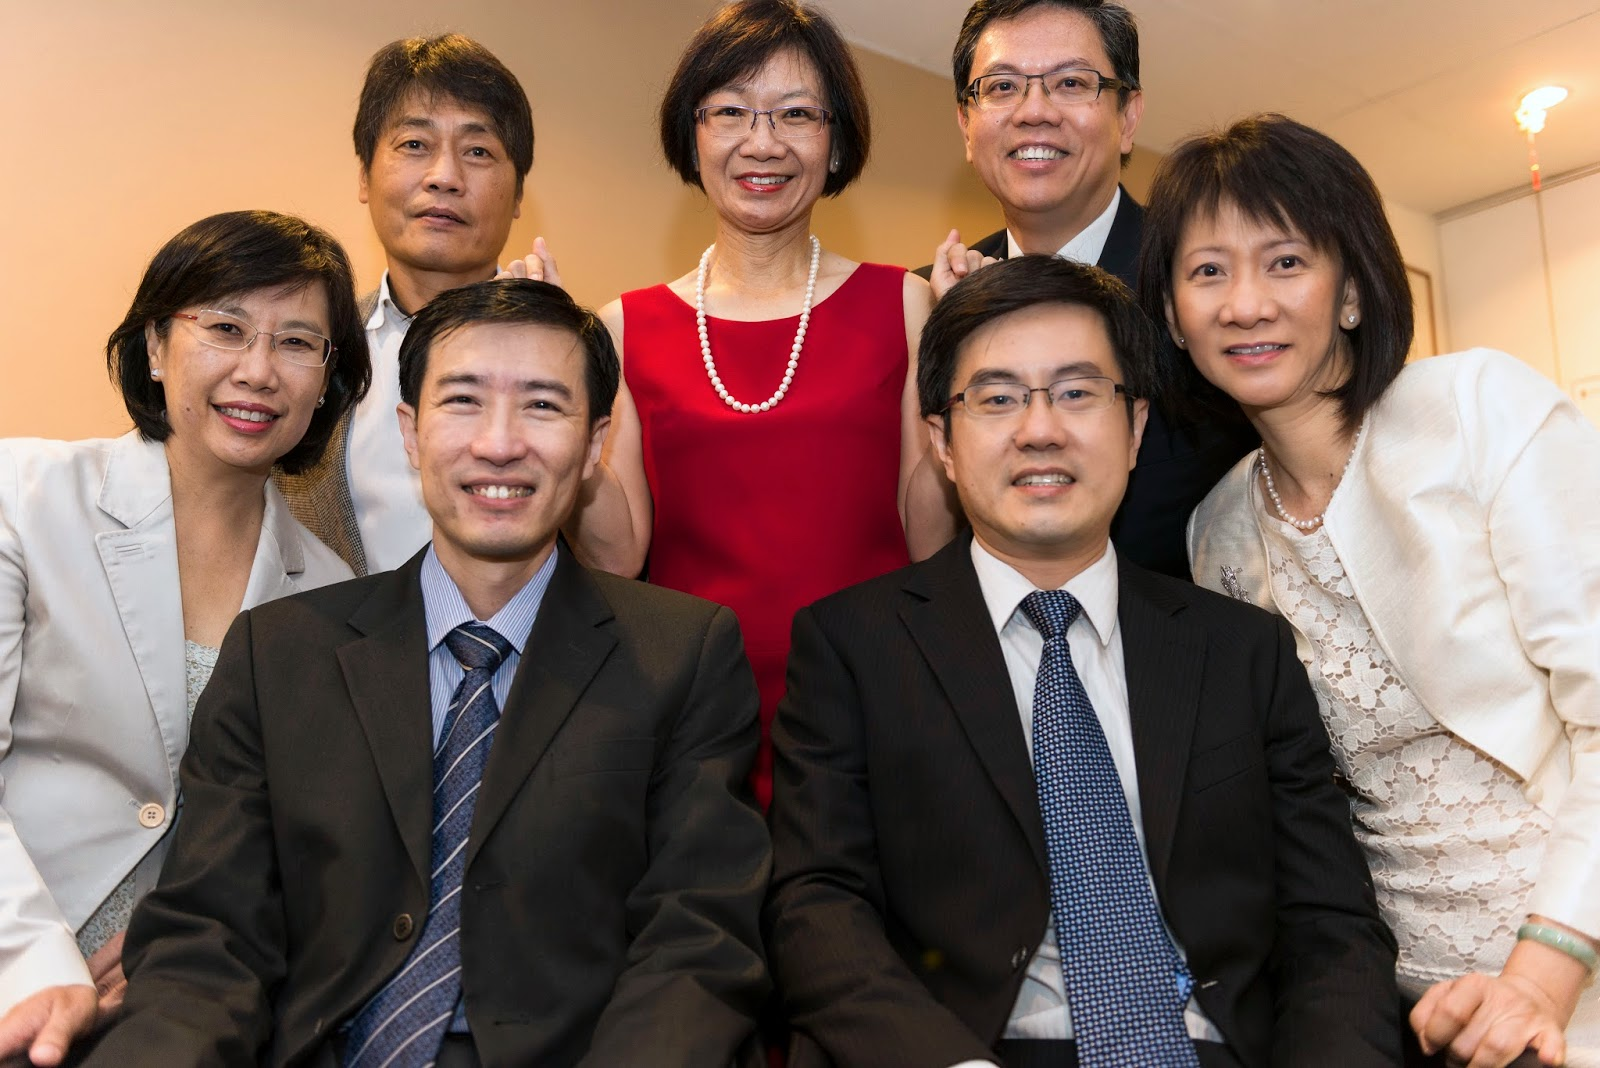 Doctors of Ophthalmic Consultants